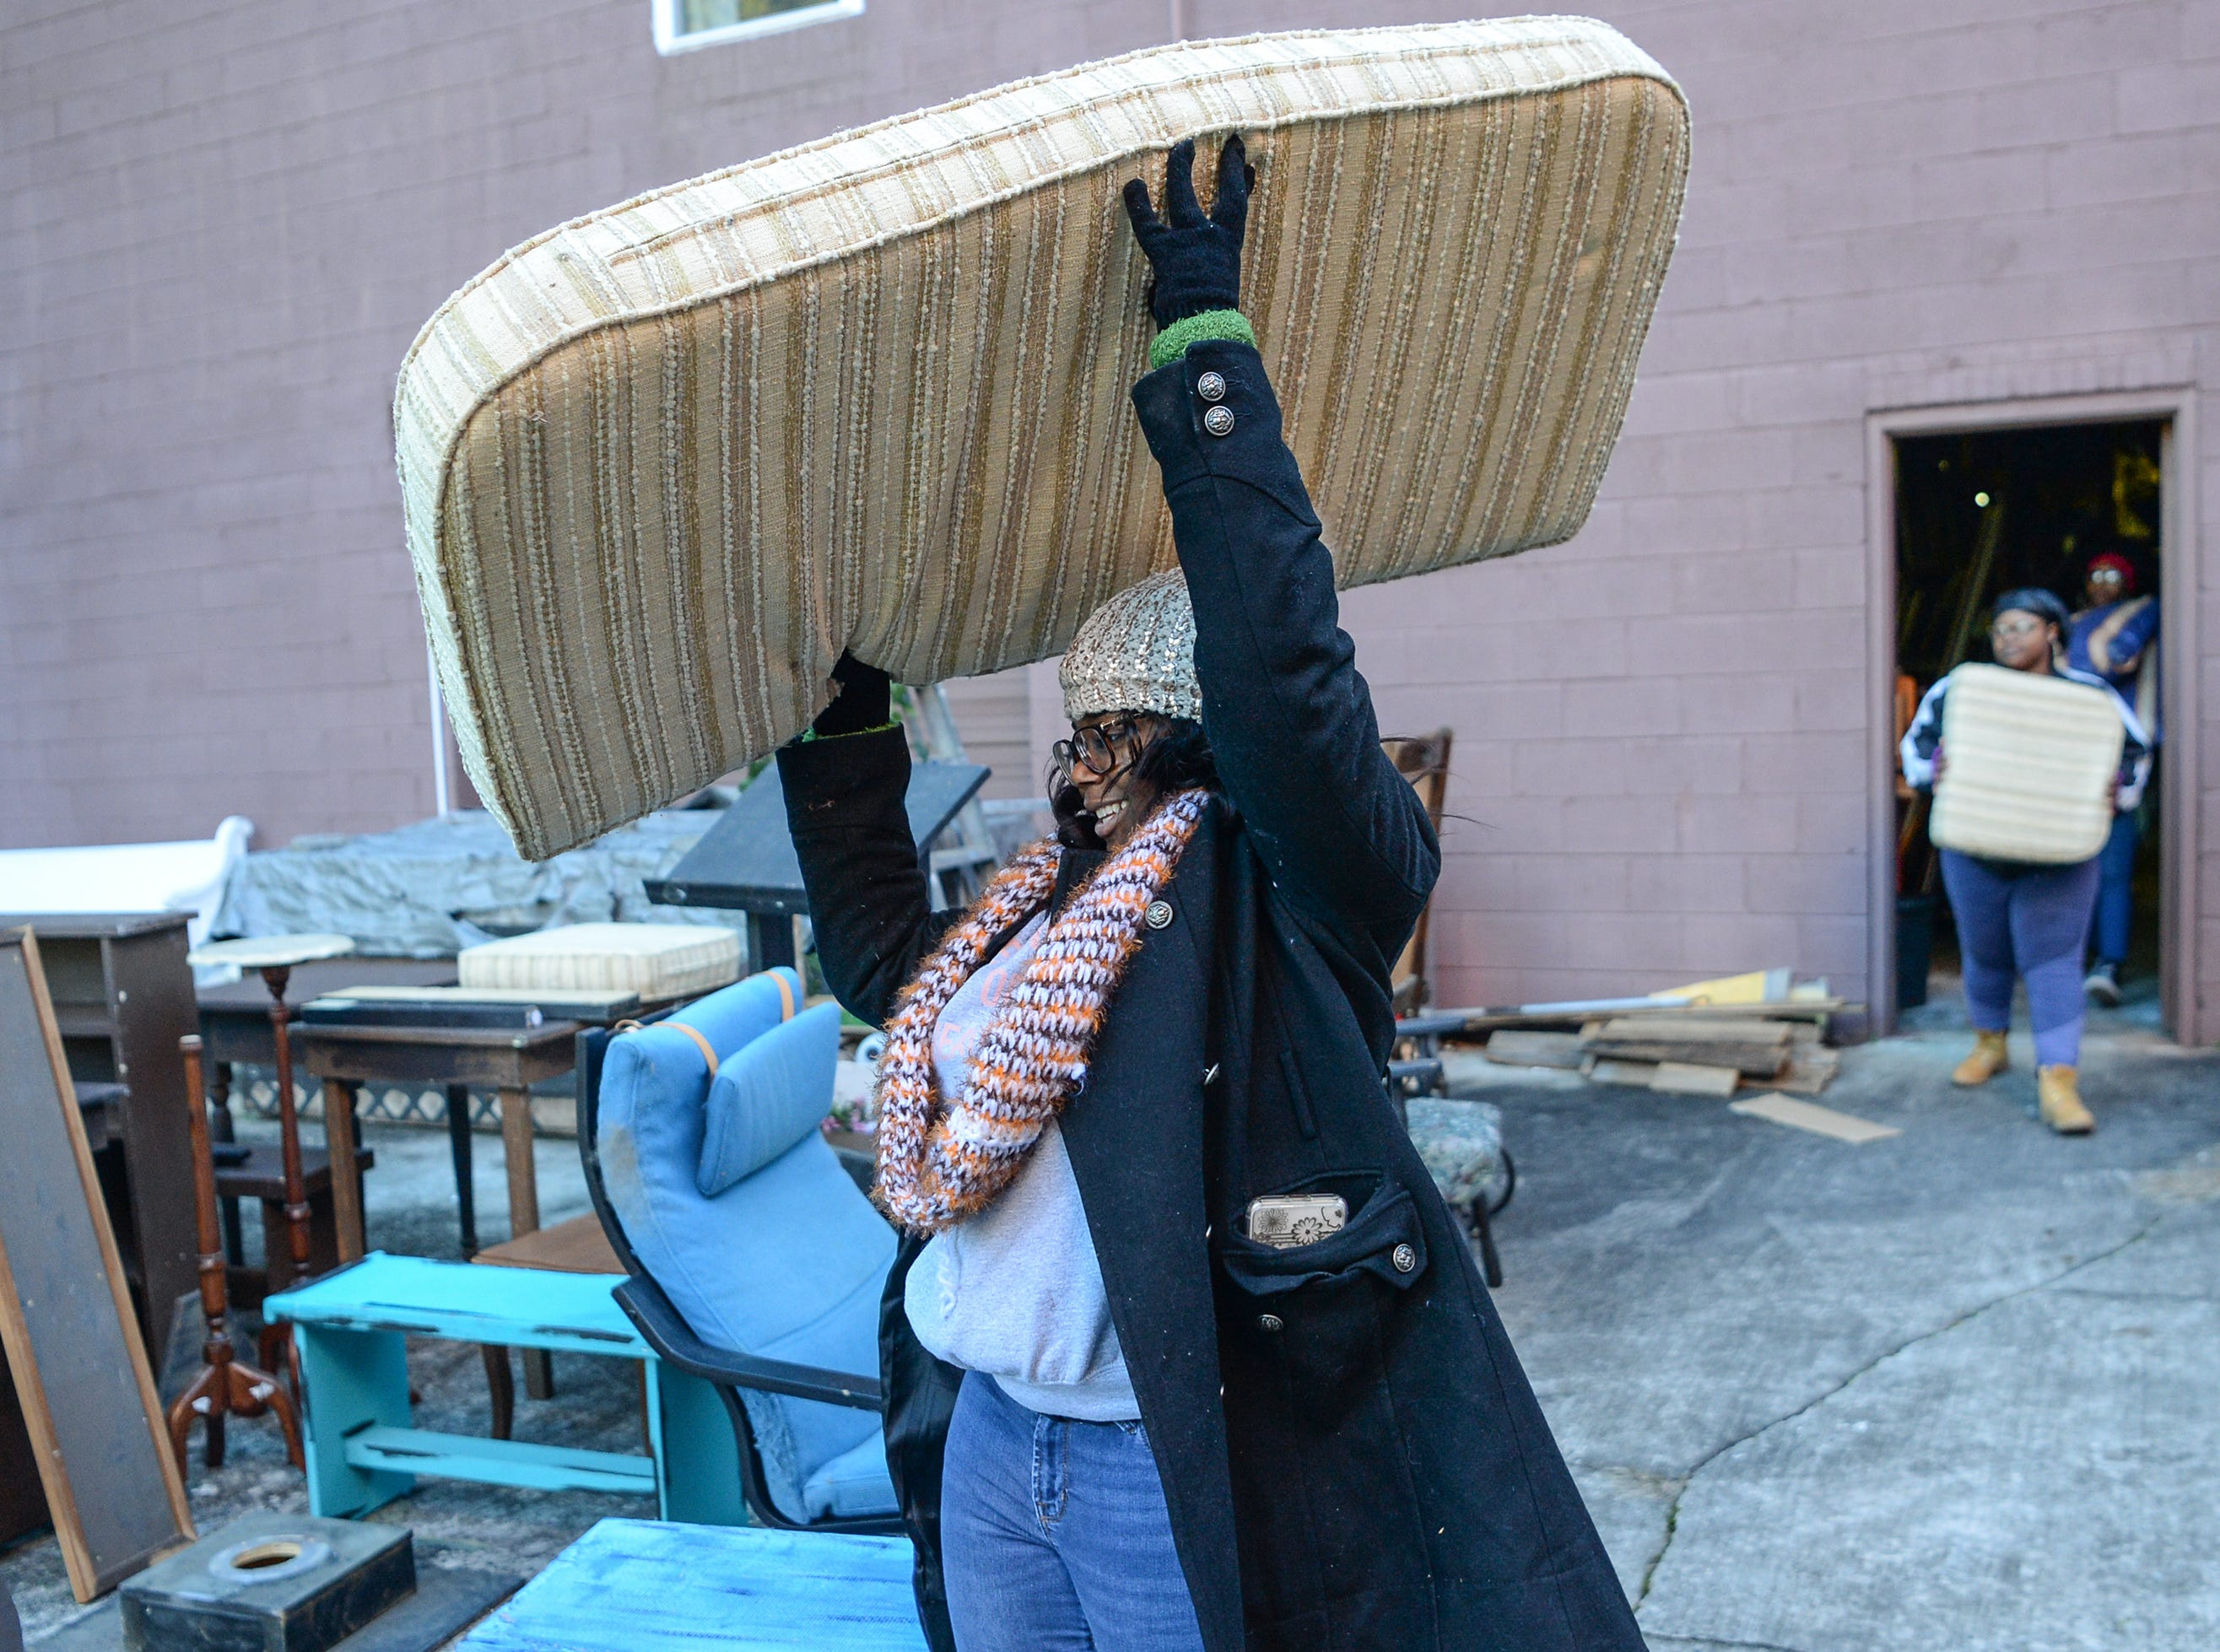 Malaysia Barr, with Clemson University Gospel Choir members, helps organize a prop and costume storage area at Clemson Little Theatre during the Clemson University Martin Luther King, Jr. Service Day in Clemson January 21, 2019.